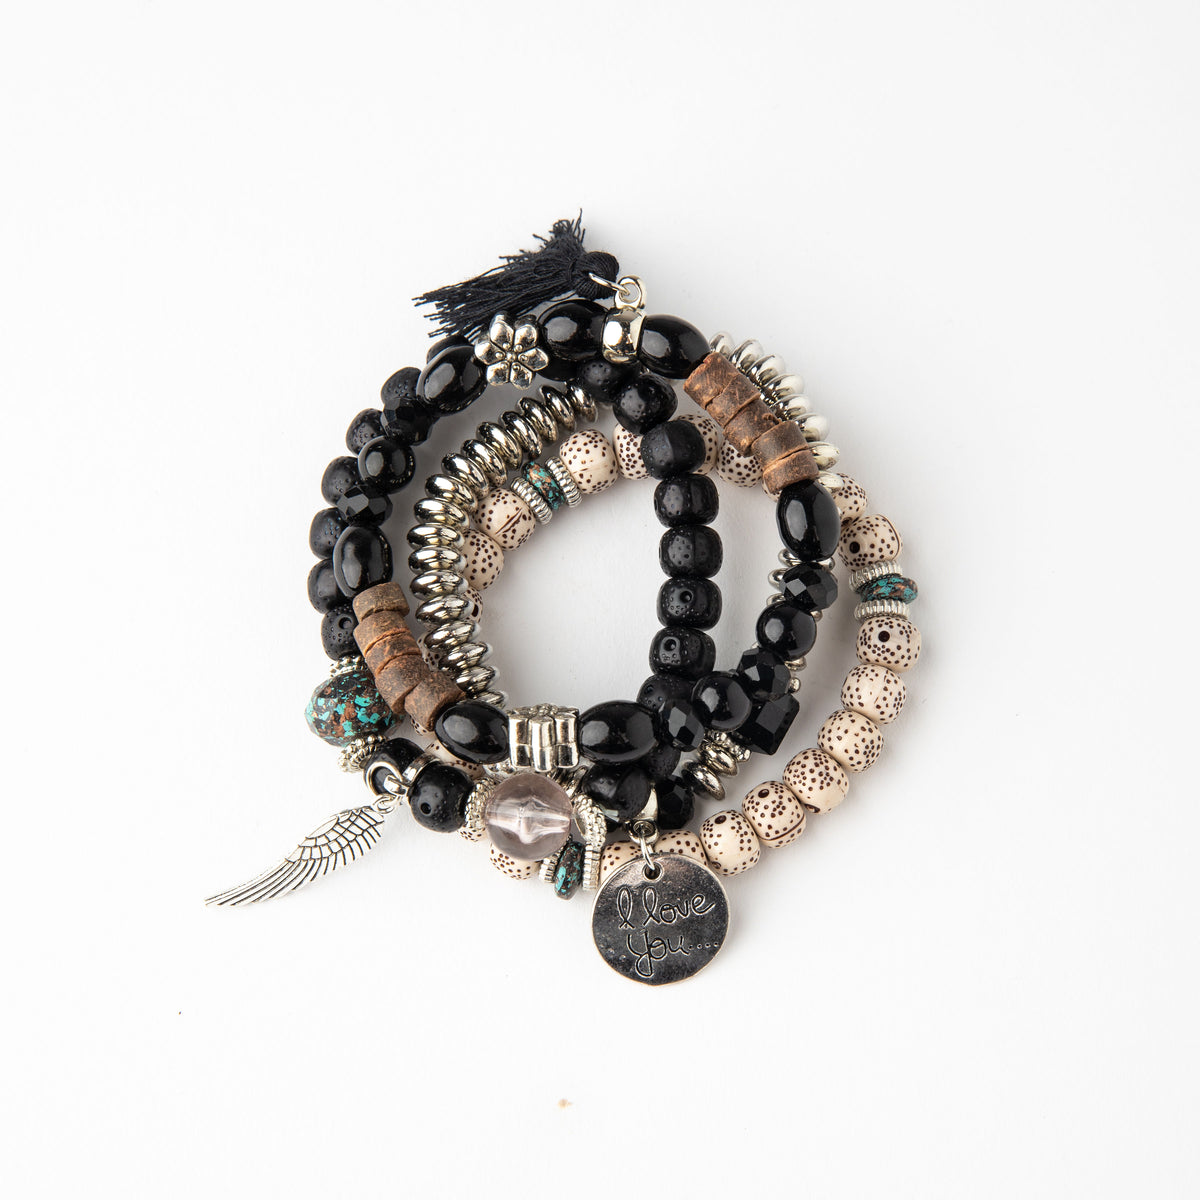 Black Boho Stacked Charm Bracelets